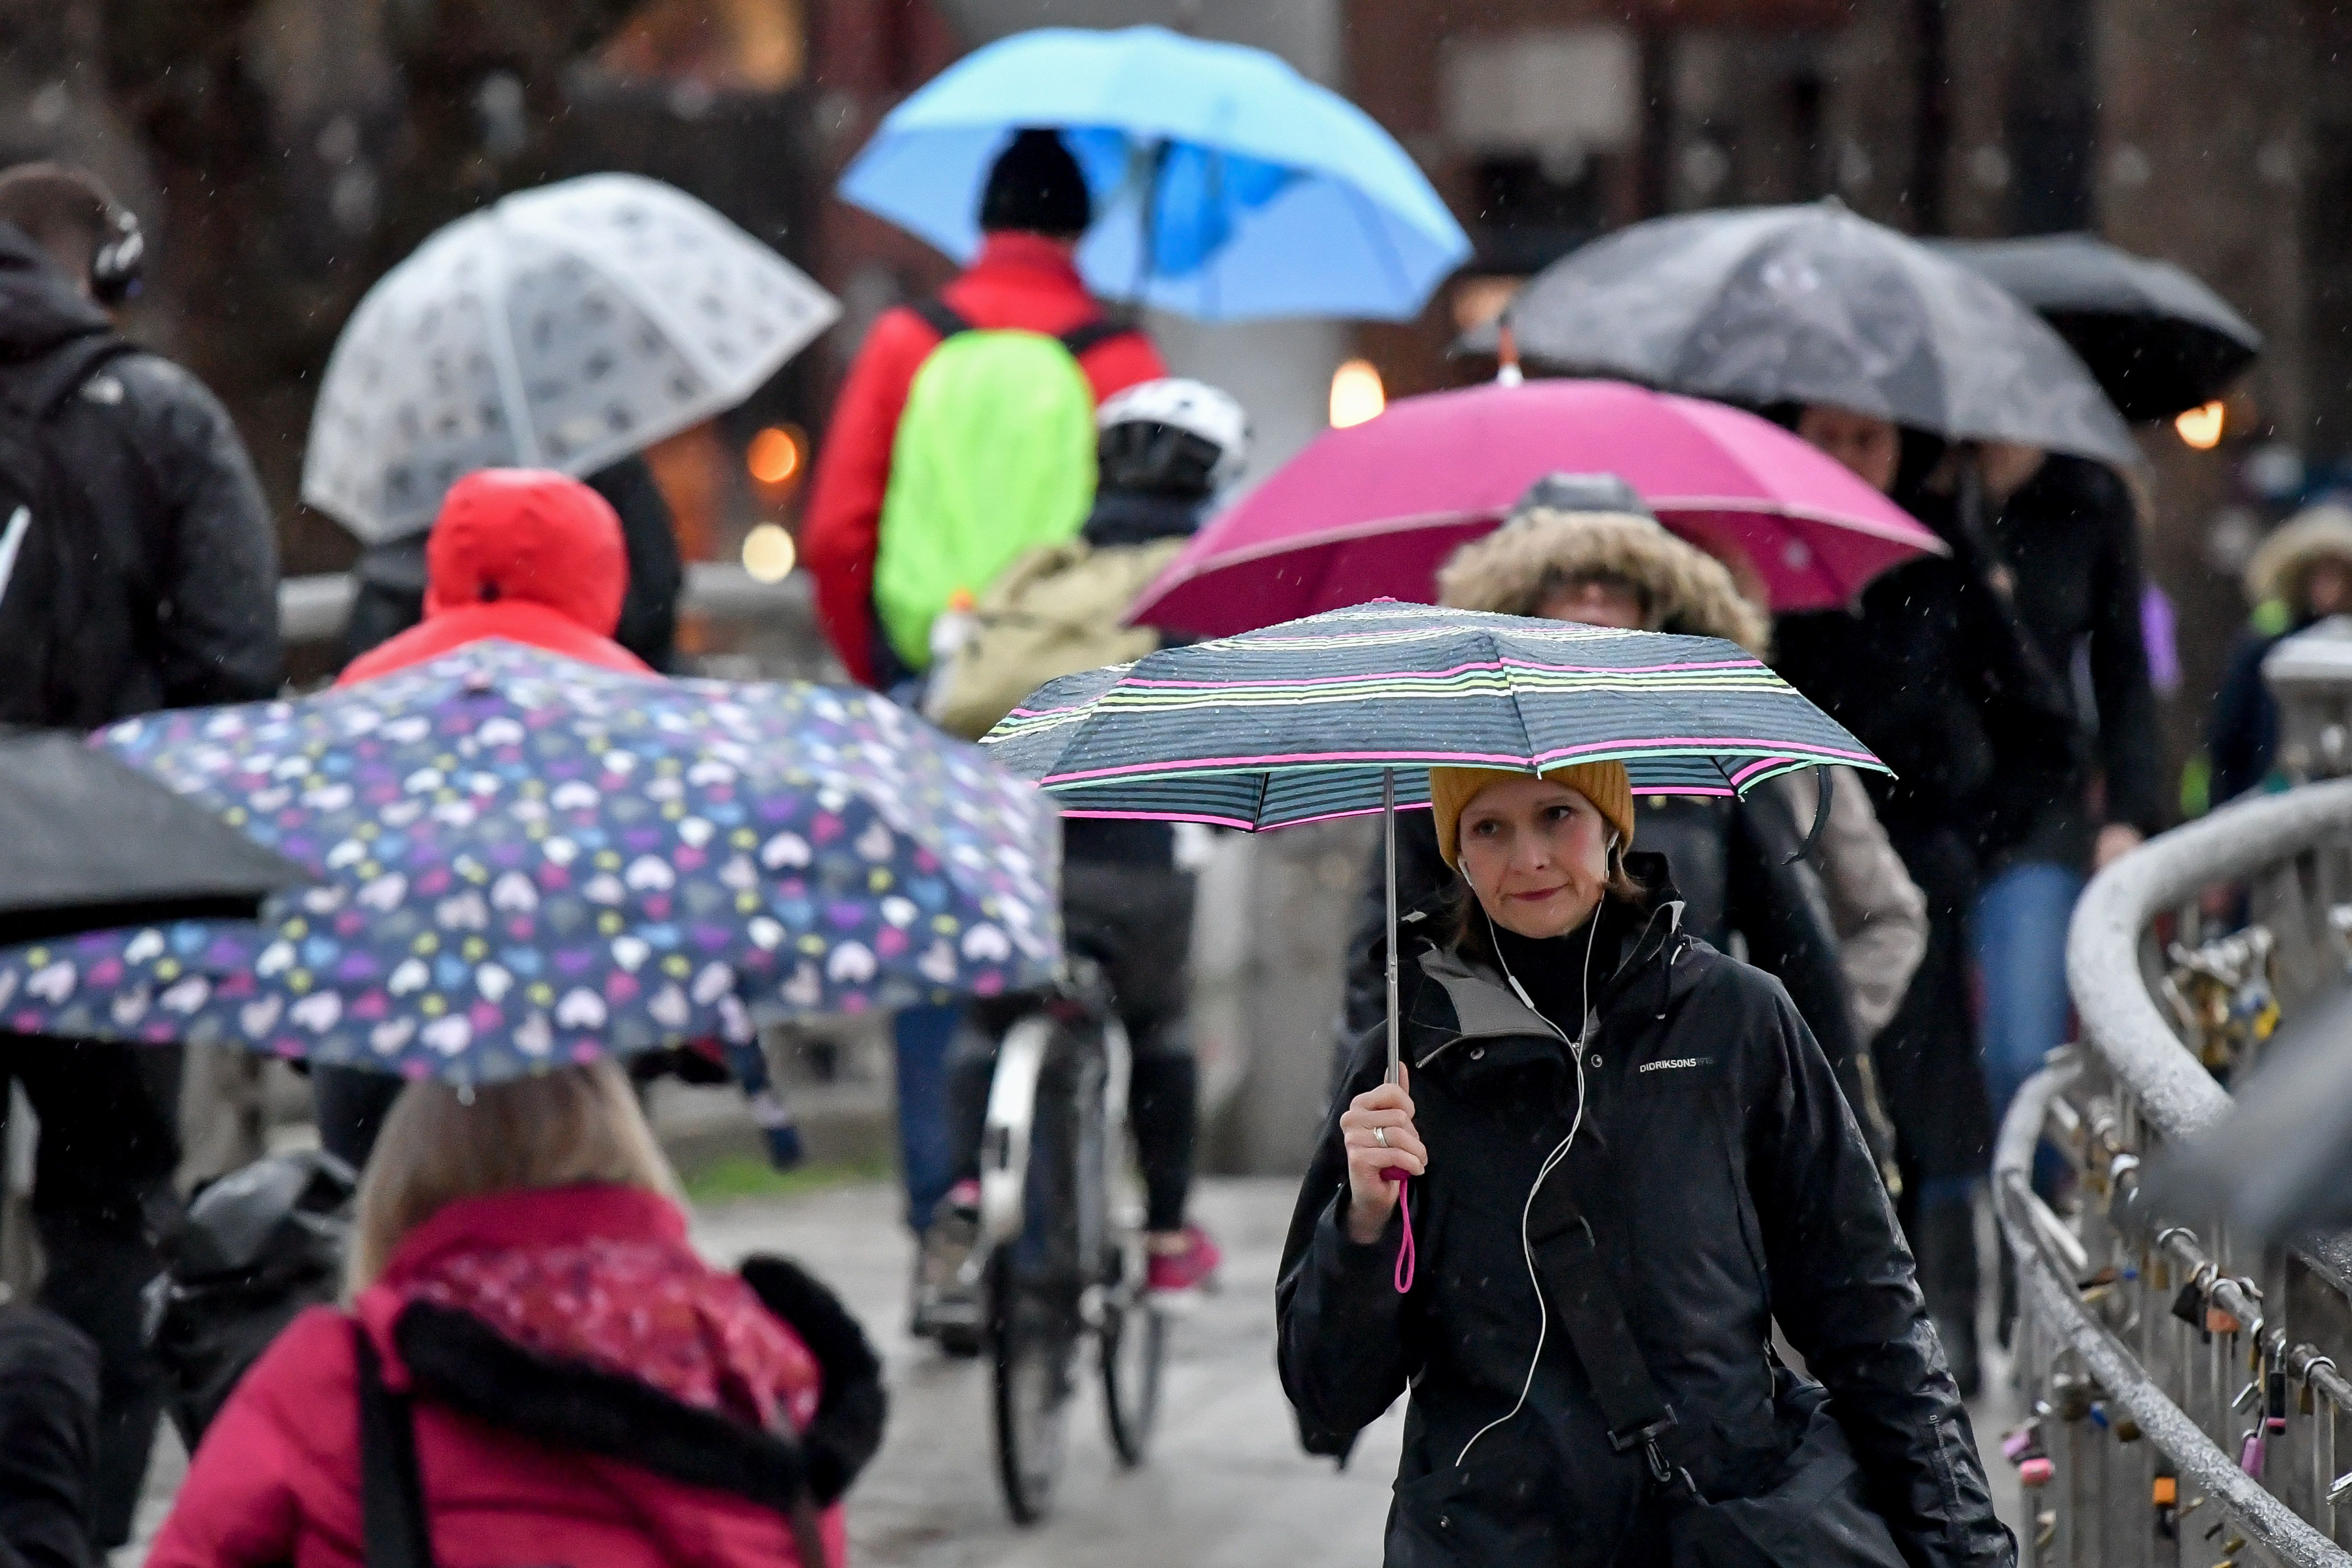 Storm Georgina Batters The UK With Heavy Rain And Winds Of Up To